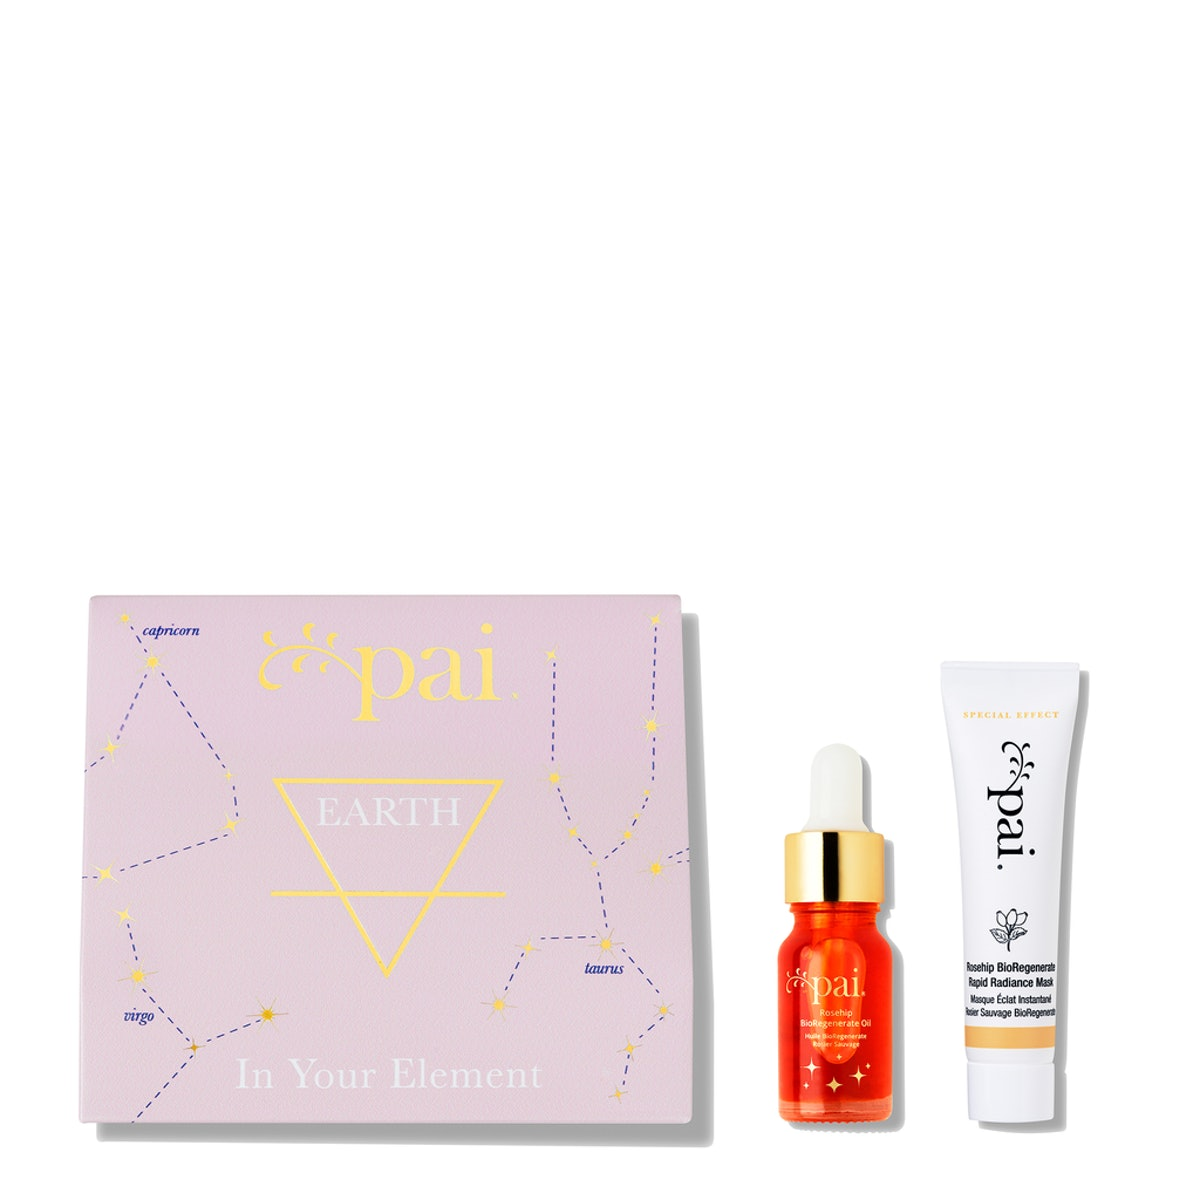 Earth: In Your Element Gift Set